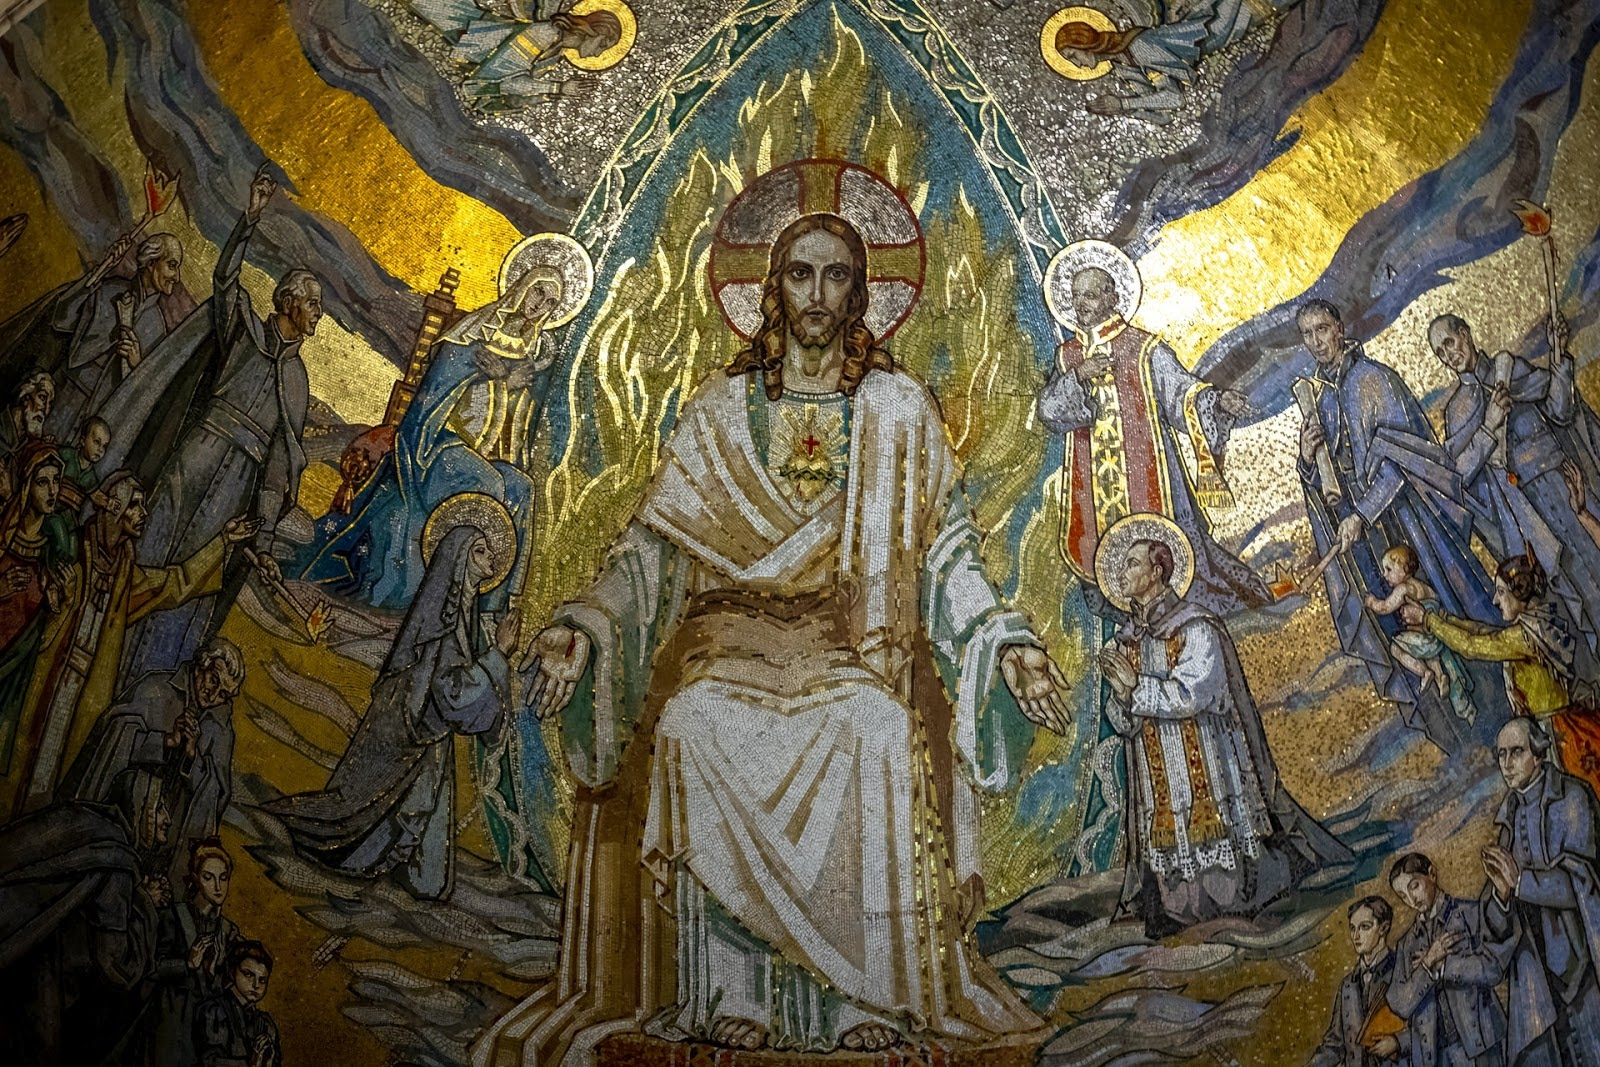 mural of Jesus and disciples